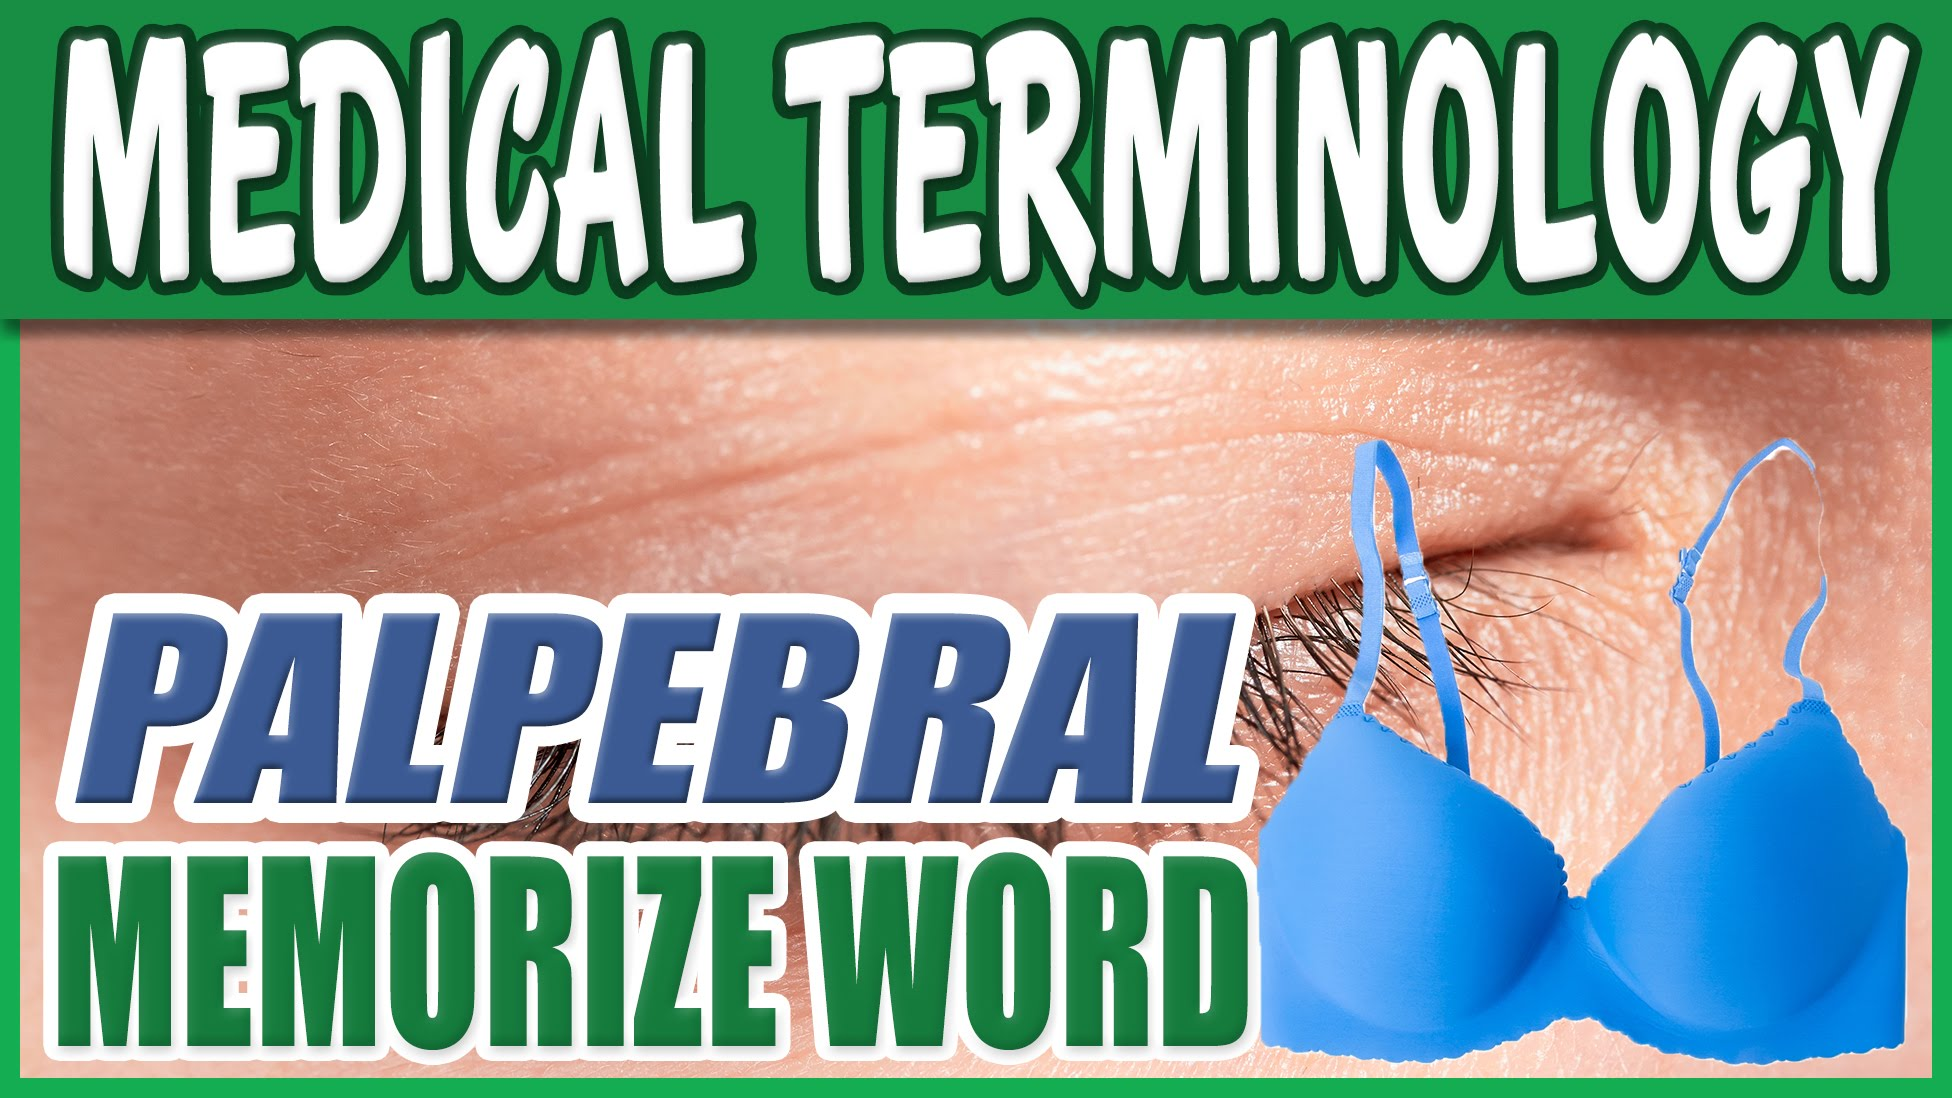 Medical Terminology Course - PALPEBRAL | Dictionary List